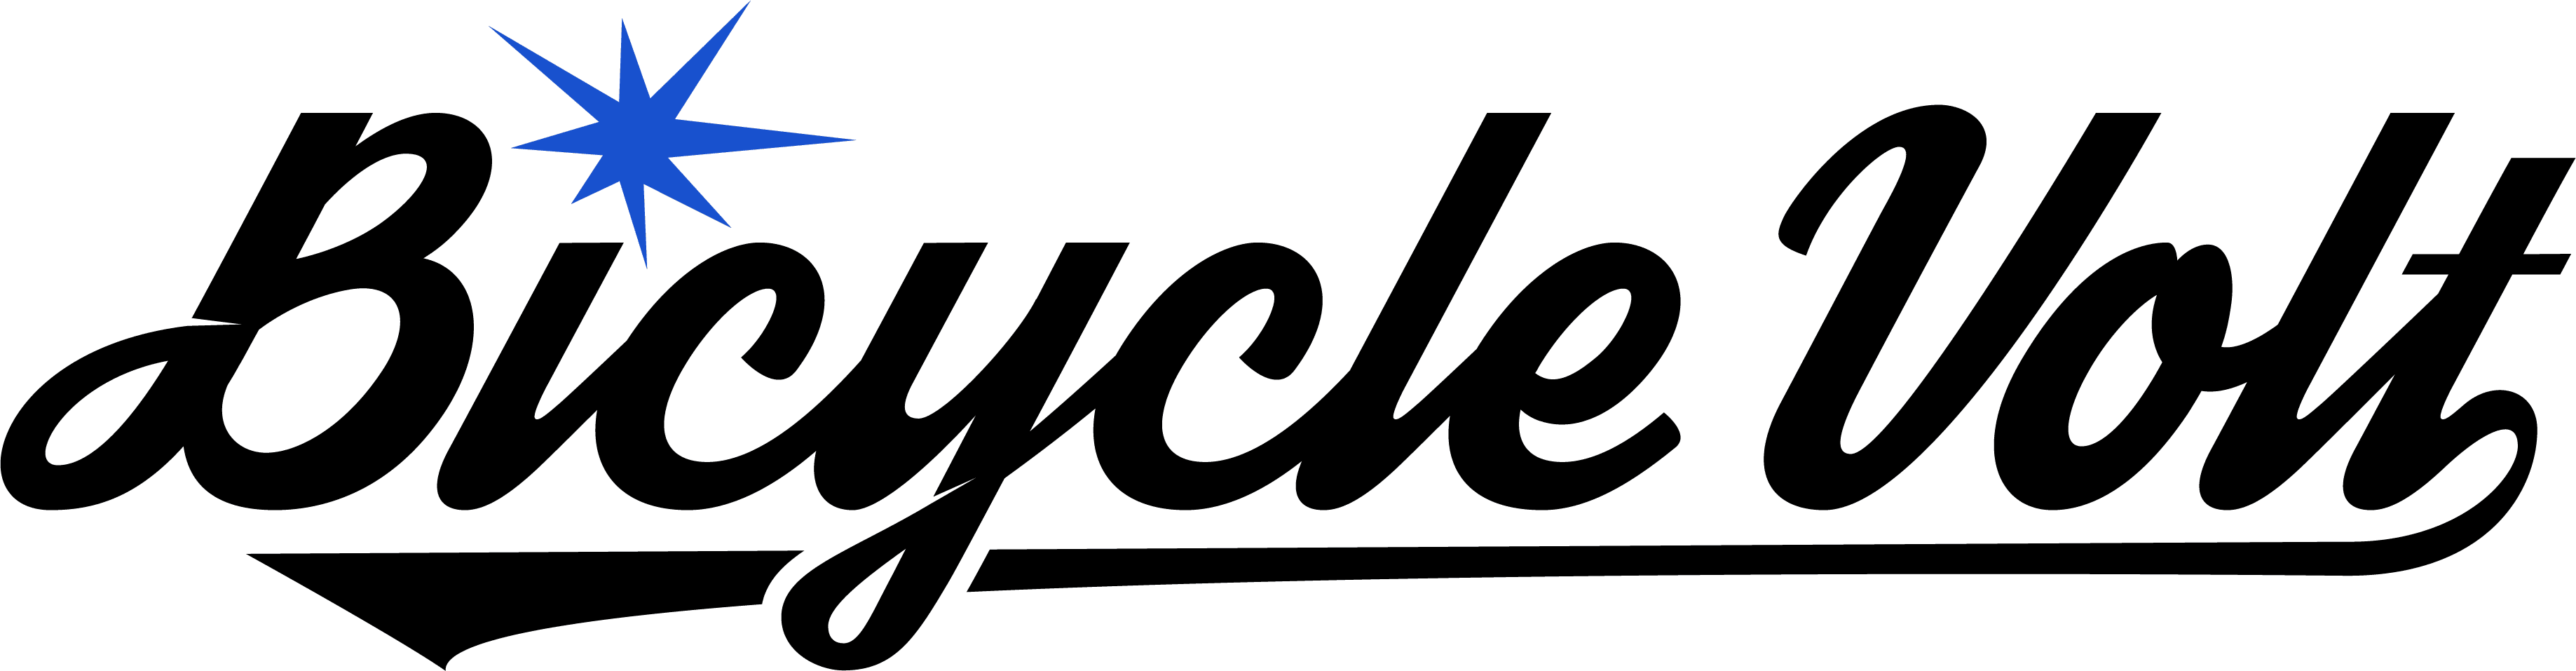 BicycleVolt